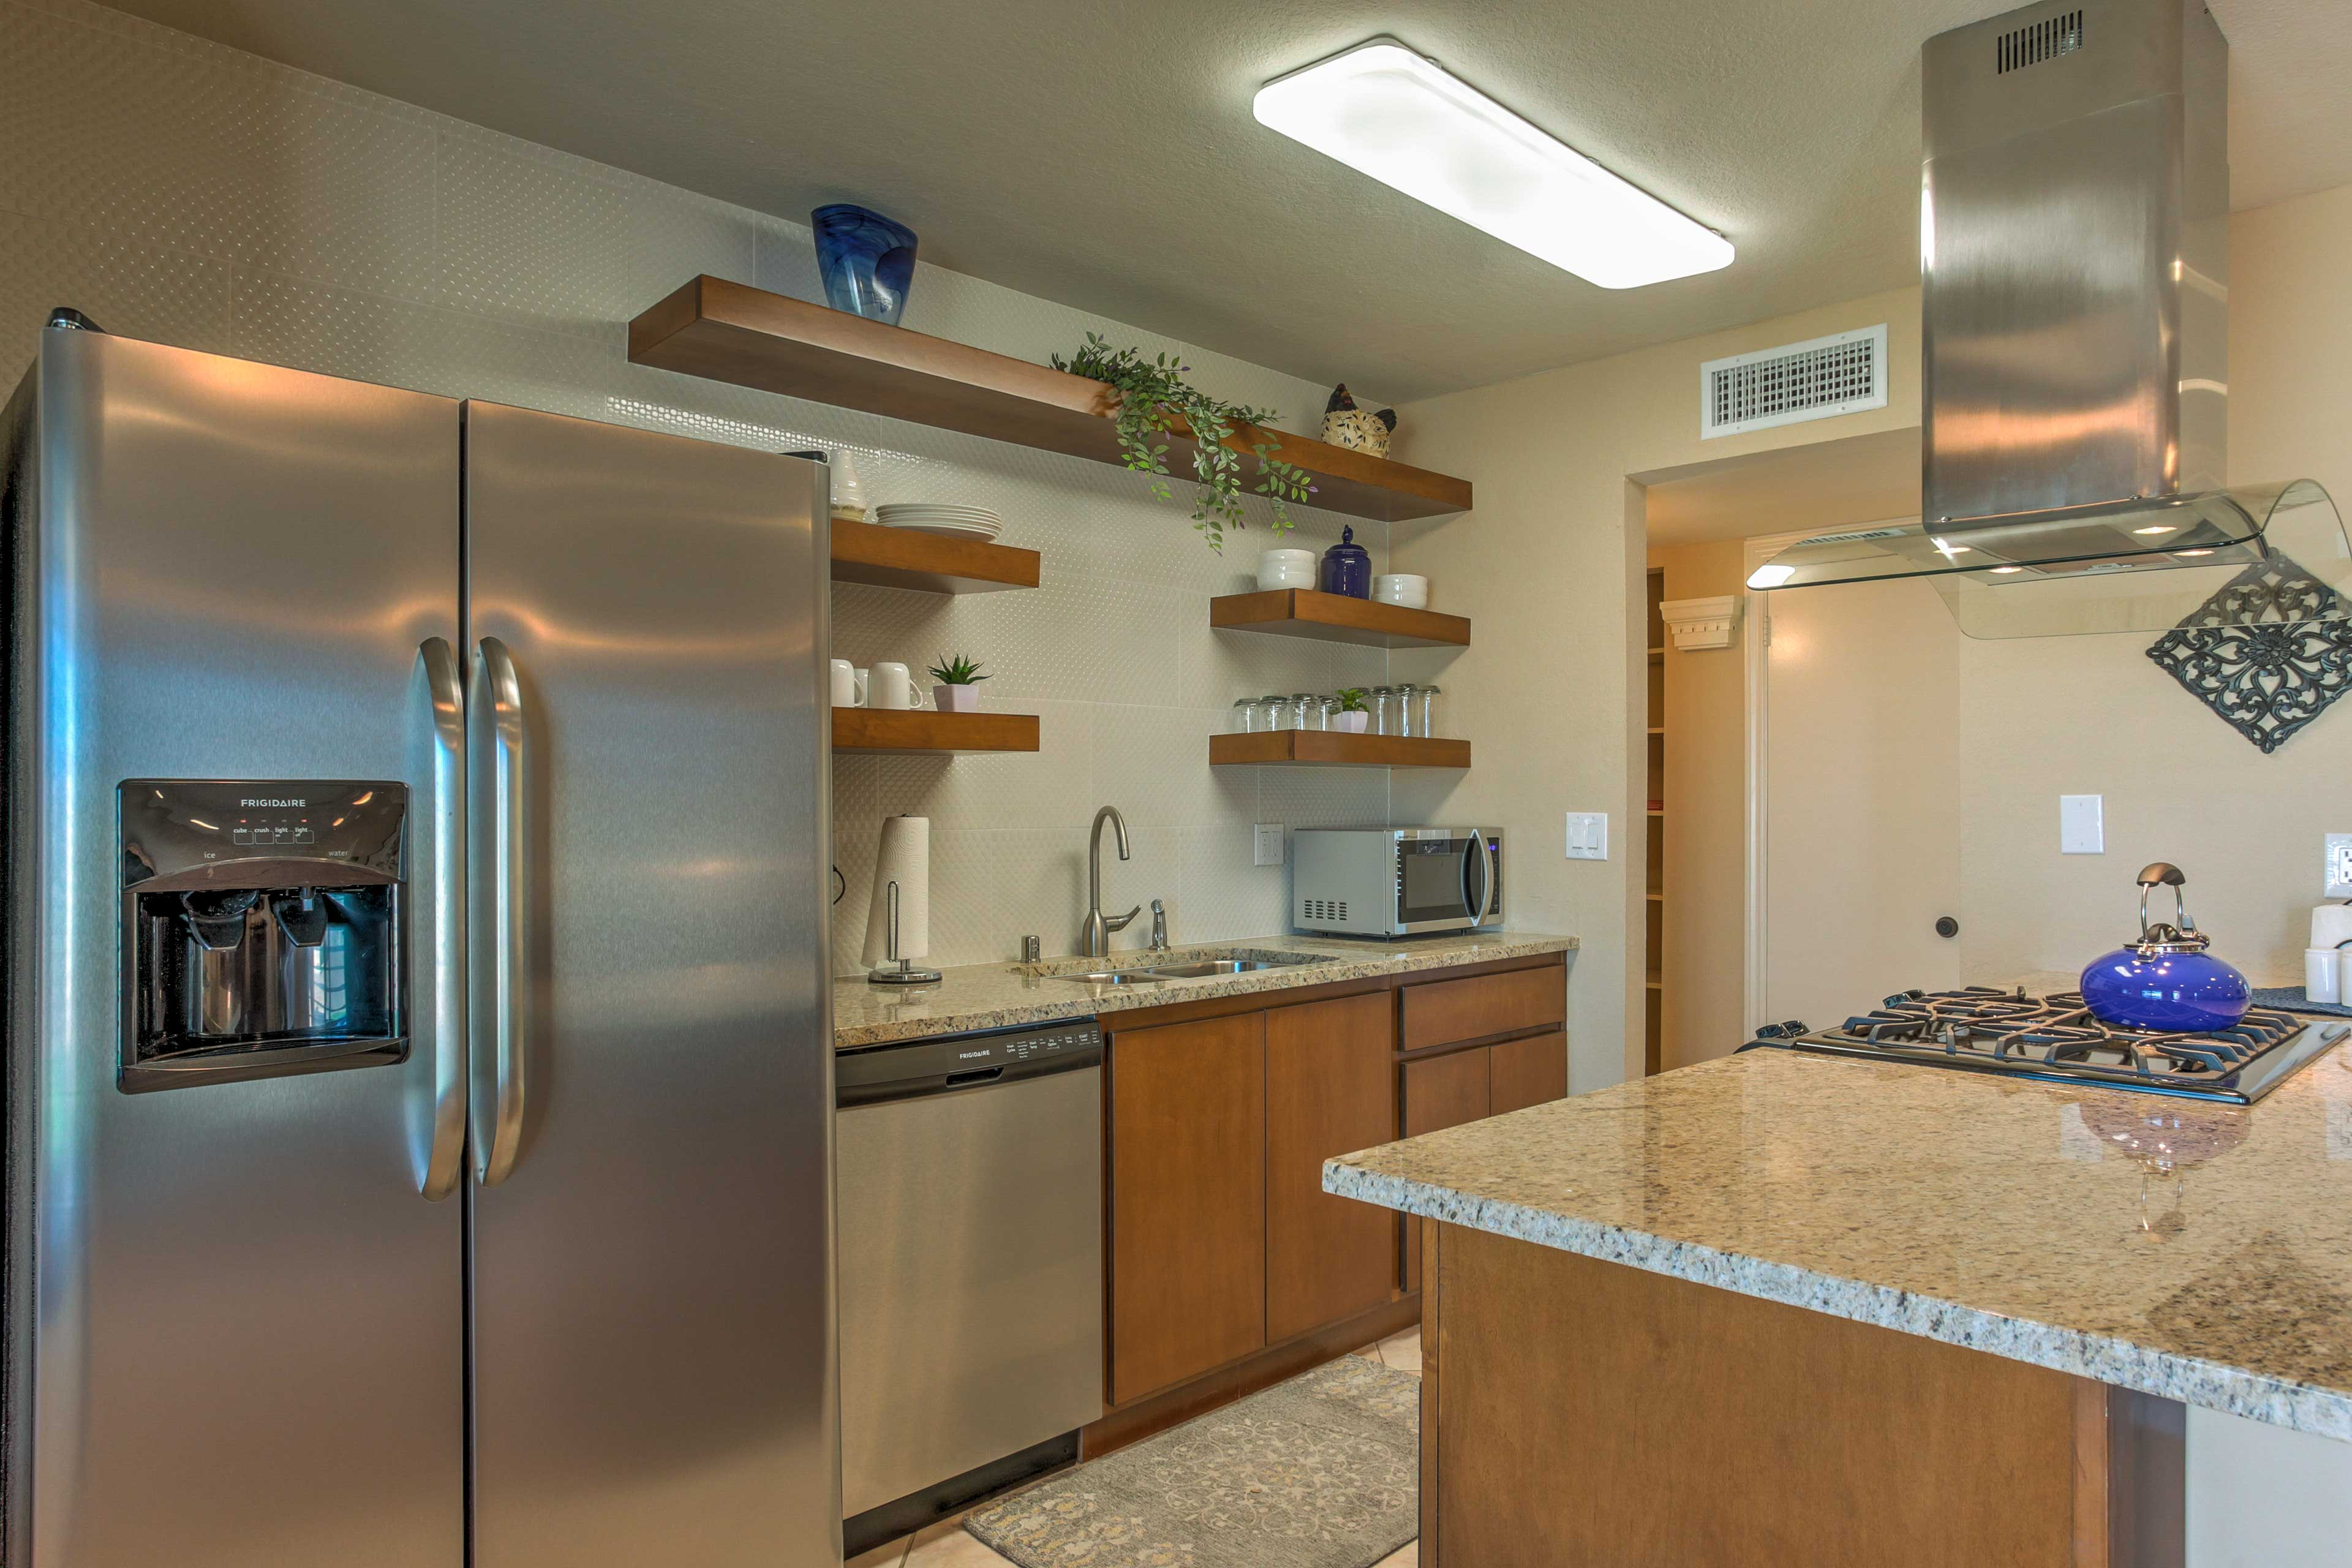 Whip up your favorite recipes in the full kitchen w/ stainless steel appliances.